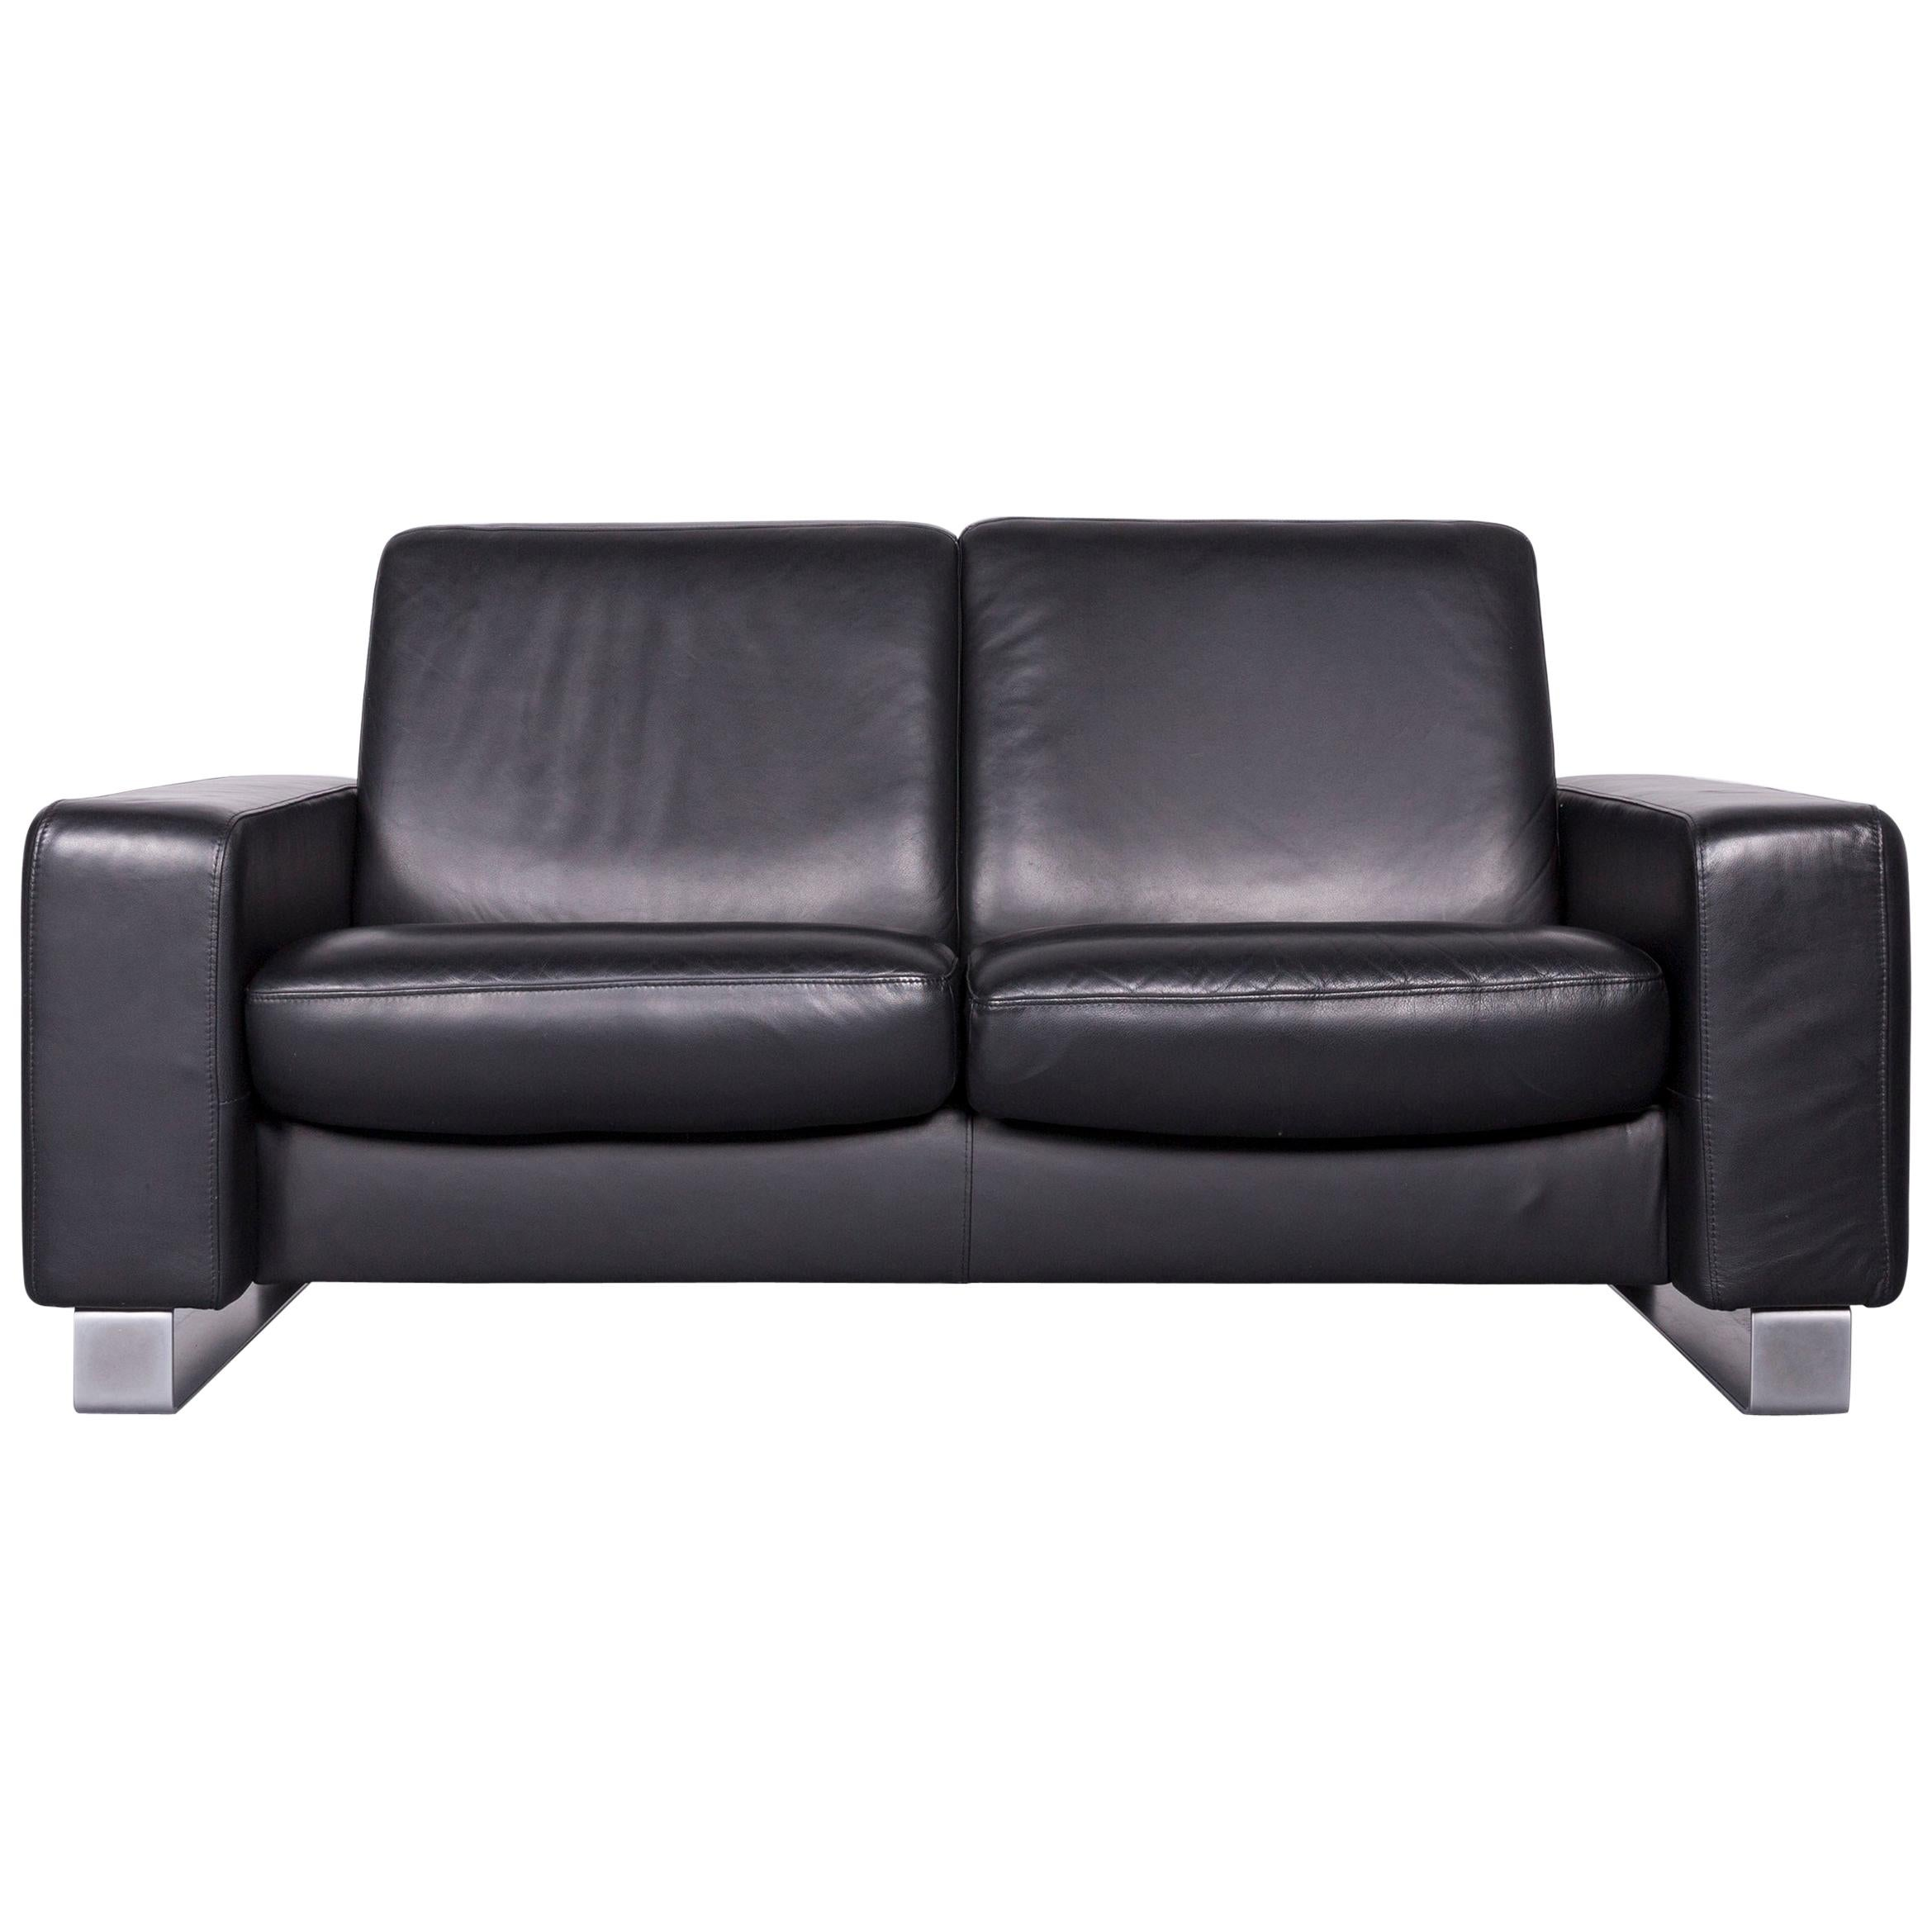 Stressless Space Designer Leather Sofa Black Genuine Leather Two Seat Couch